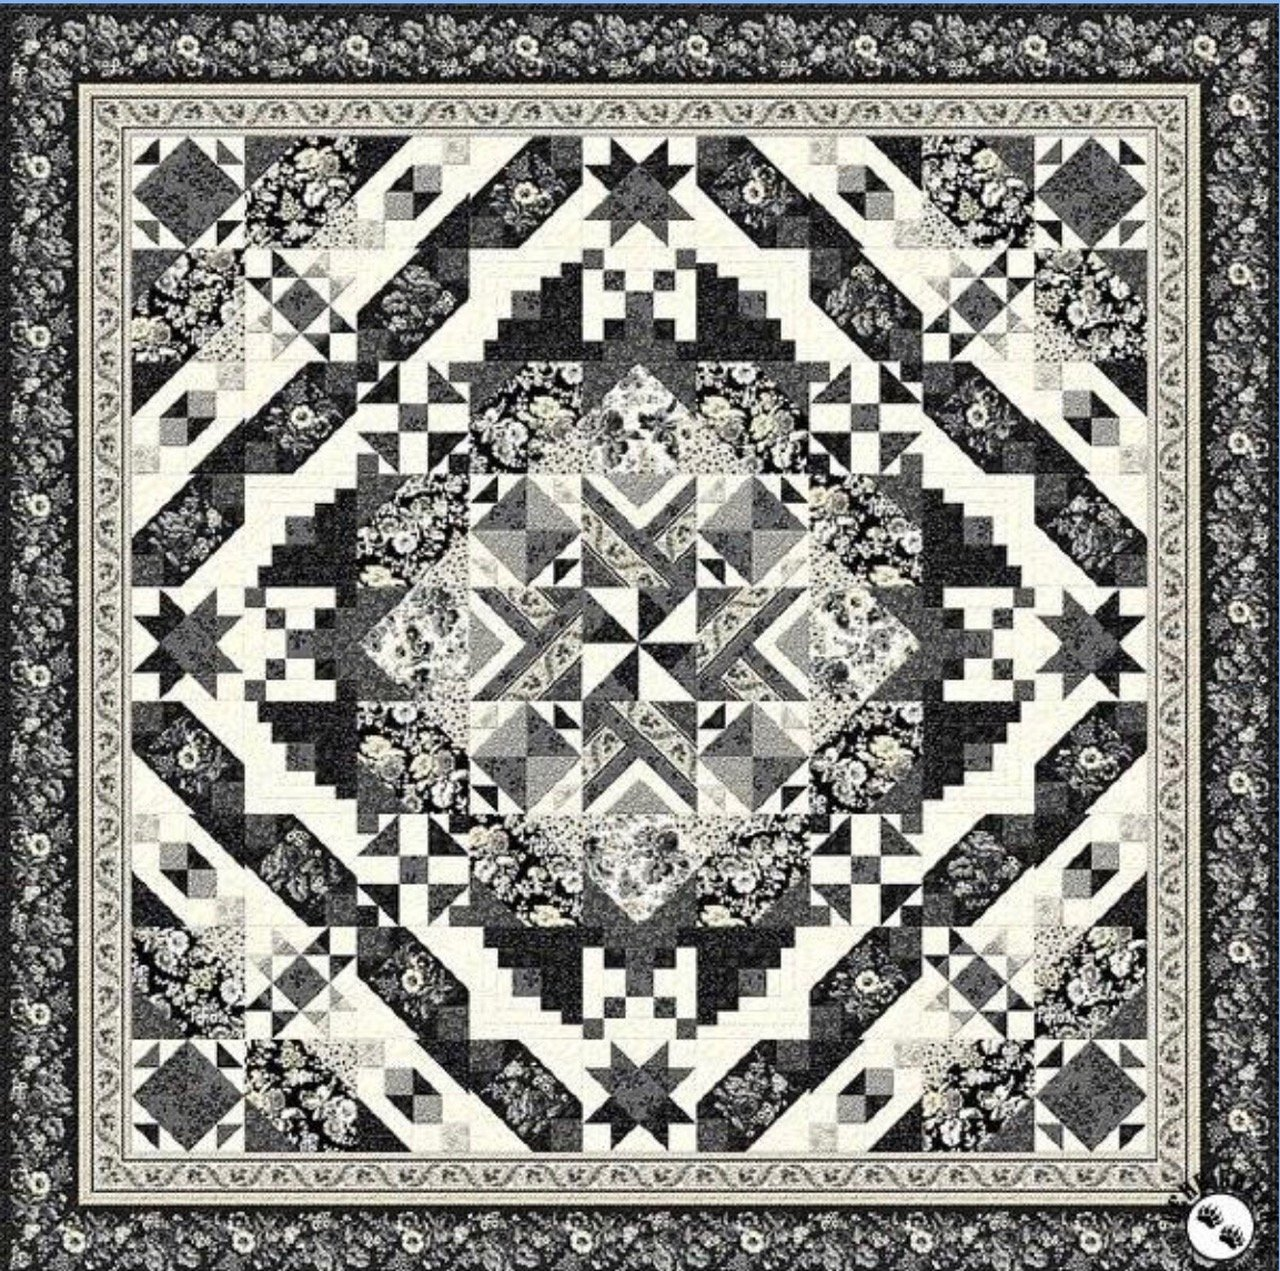 Black Diamond Quilt Along BOM